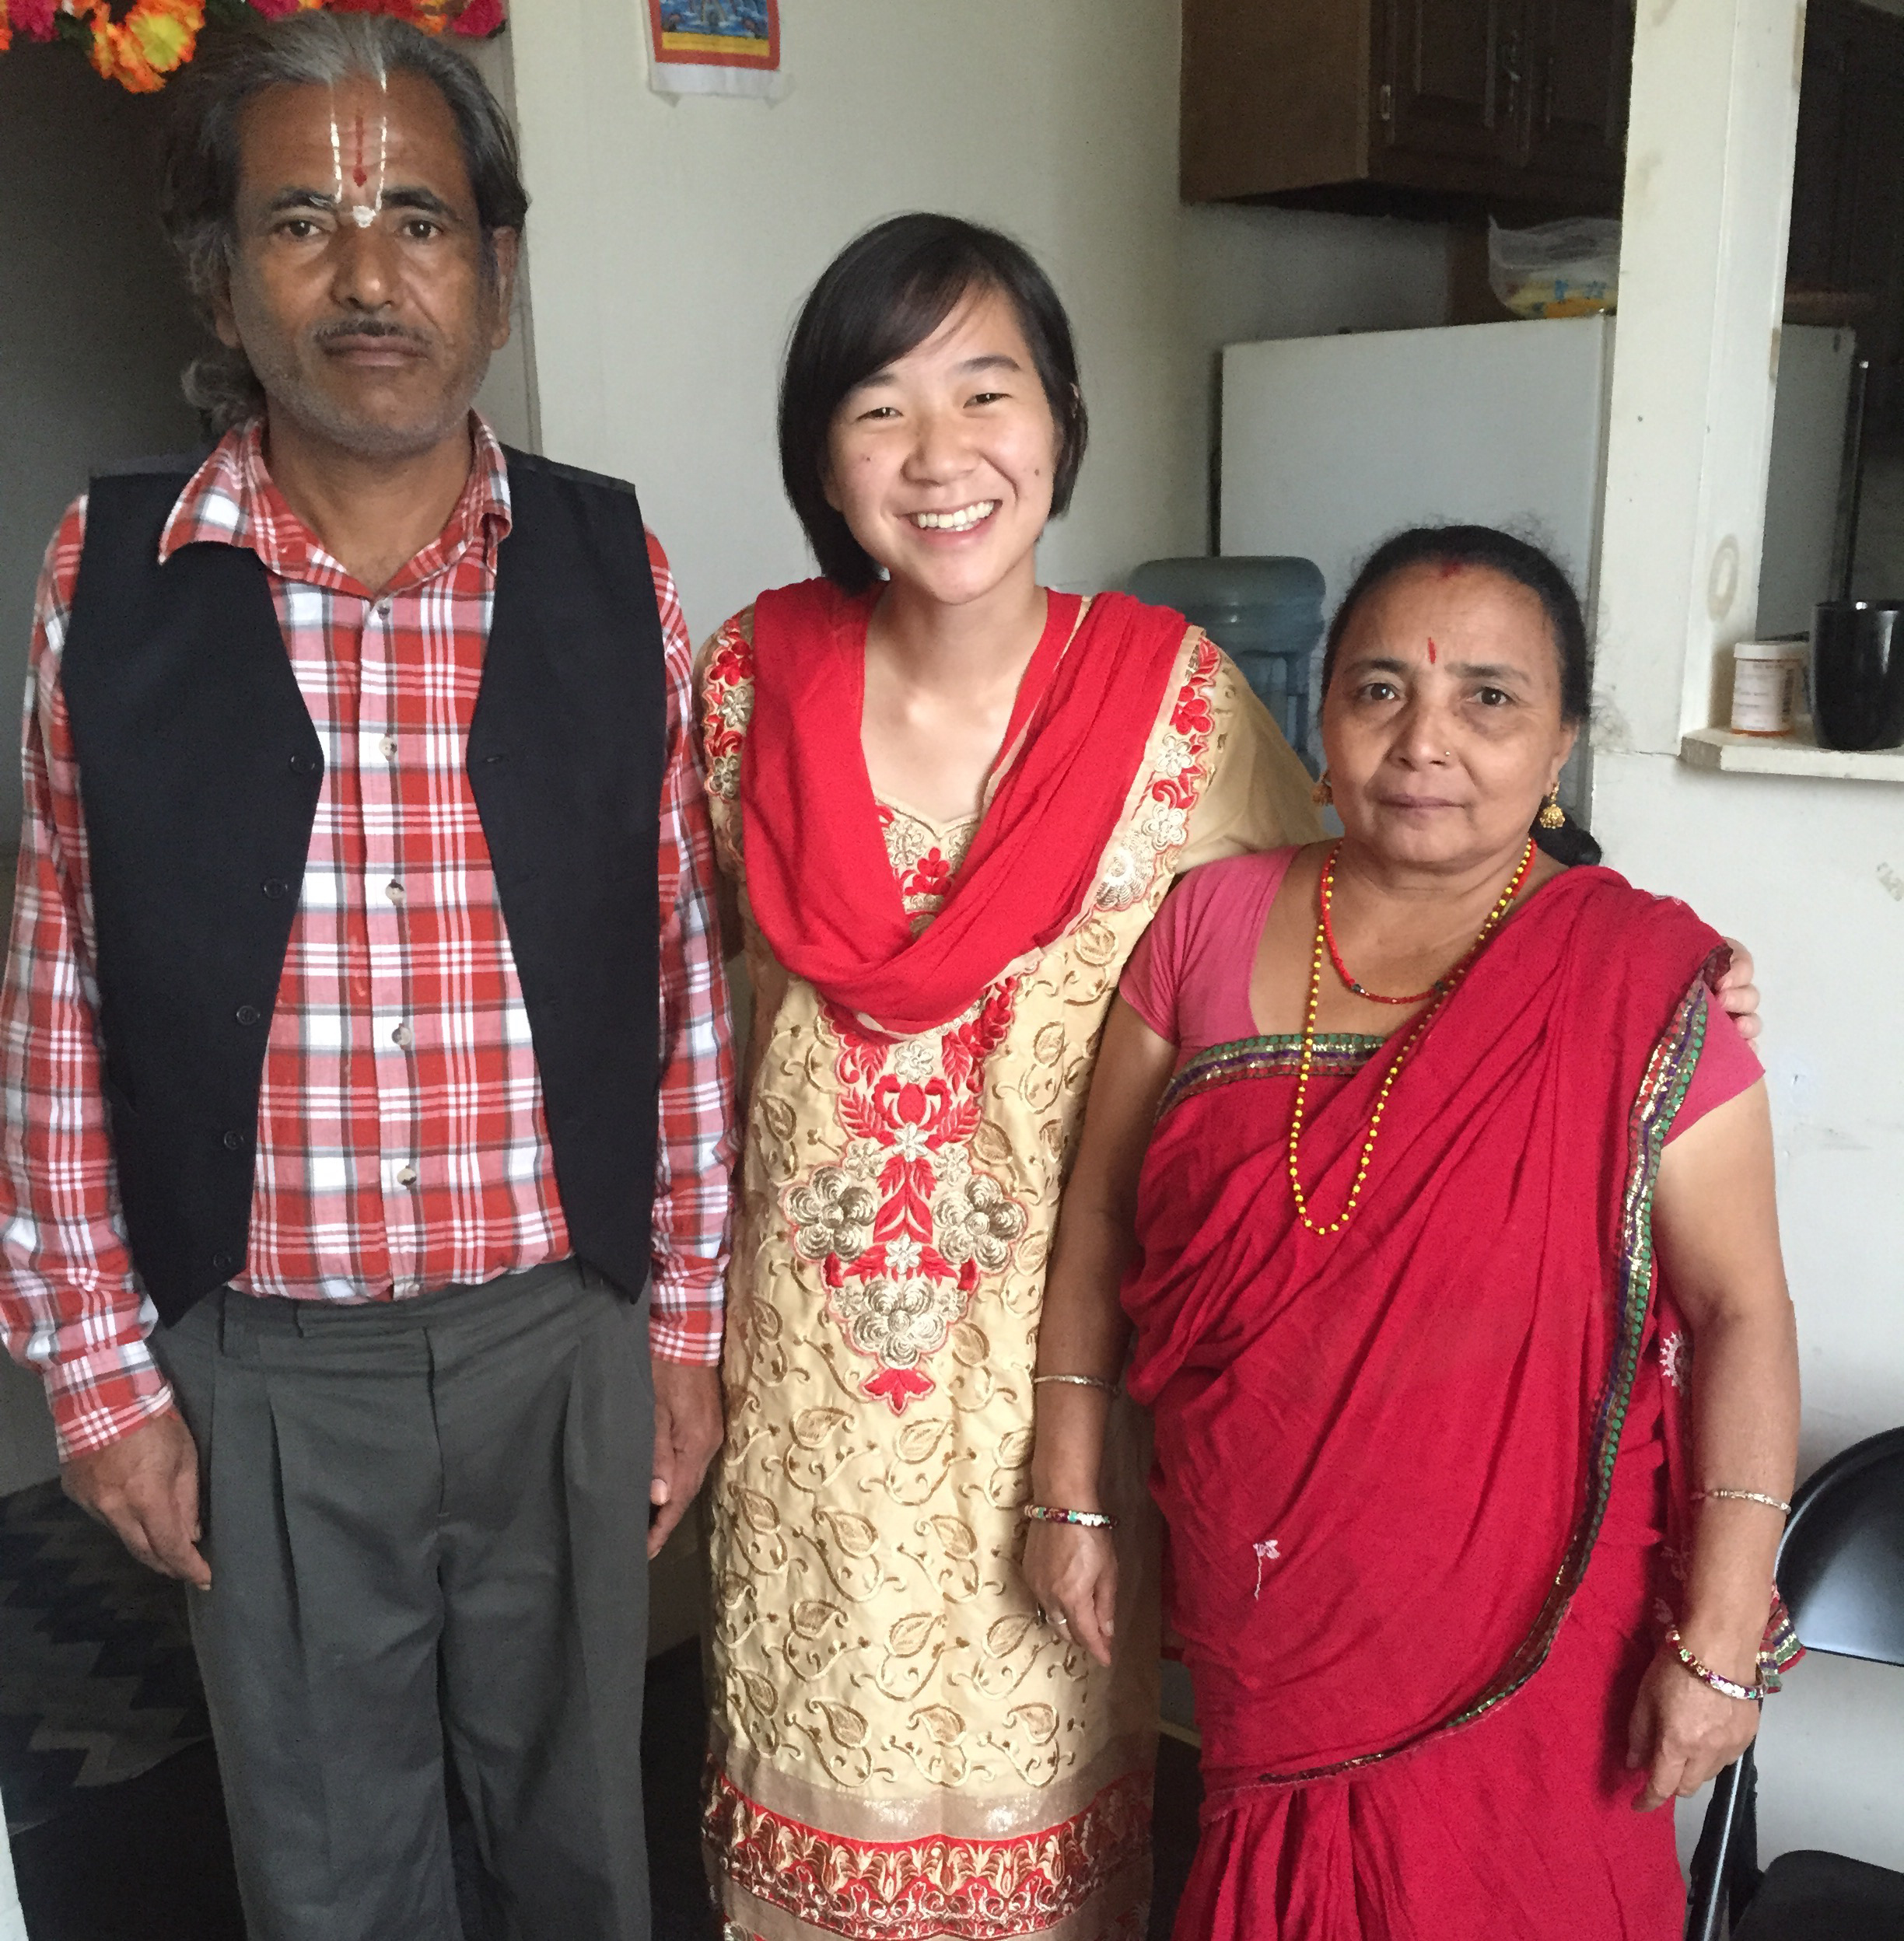 With the parents of the family I have been working with over the past 5 years